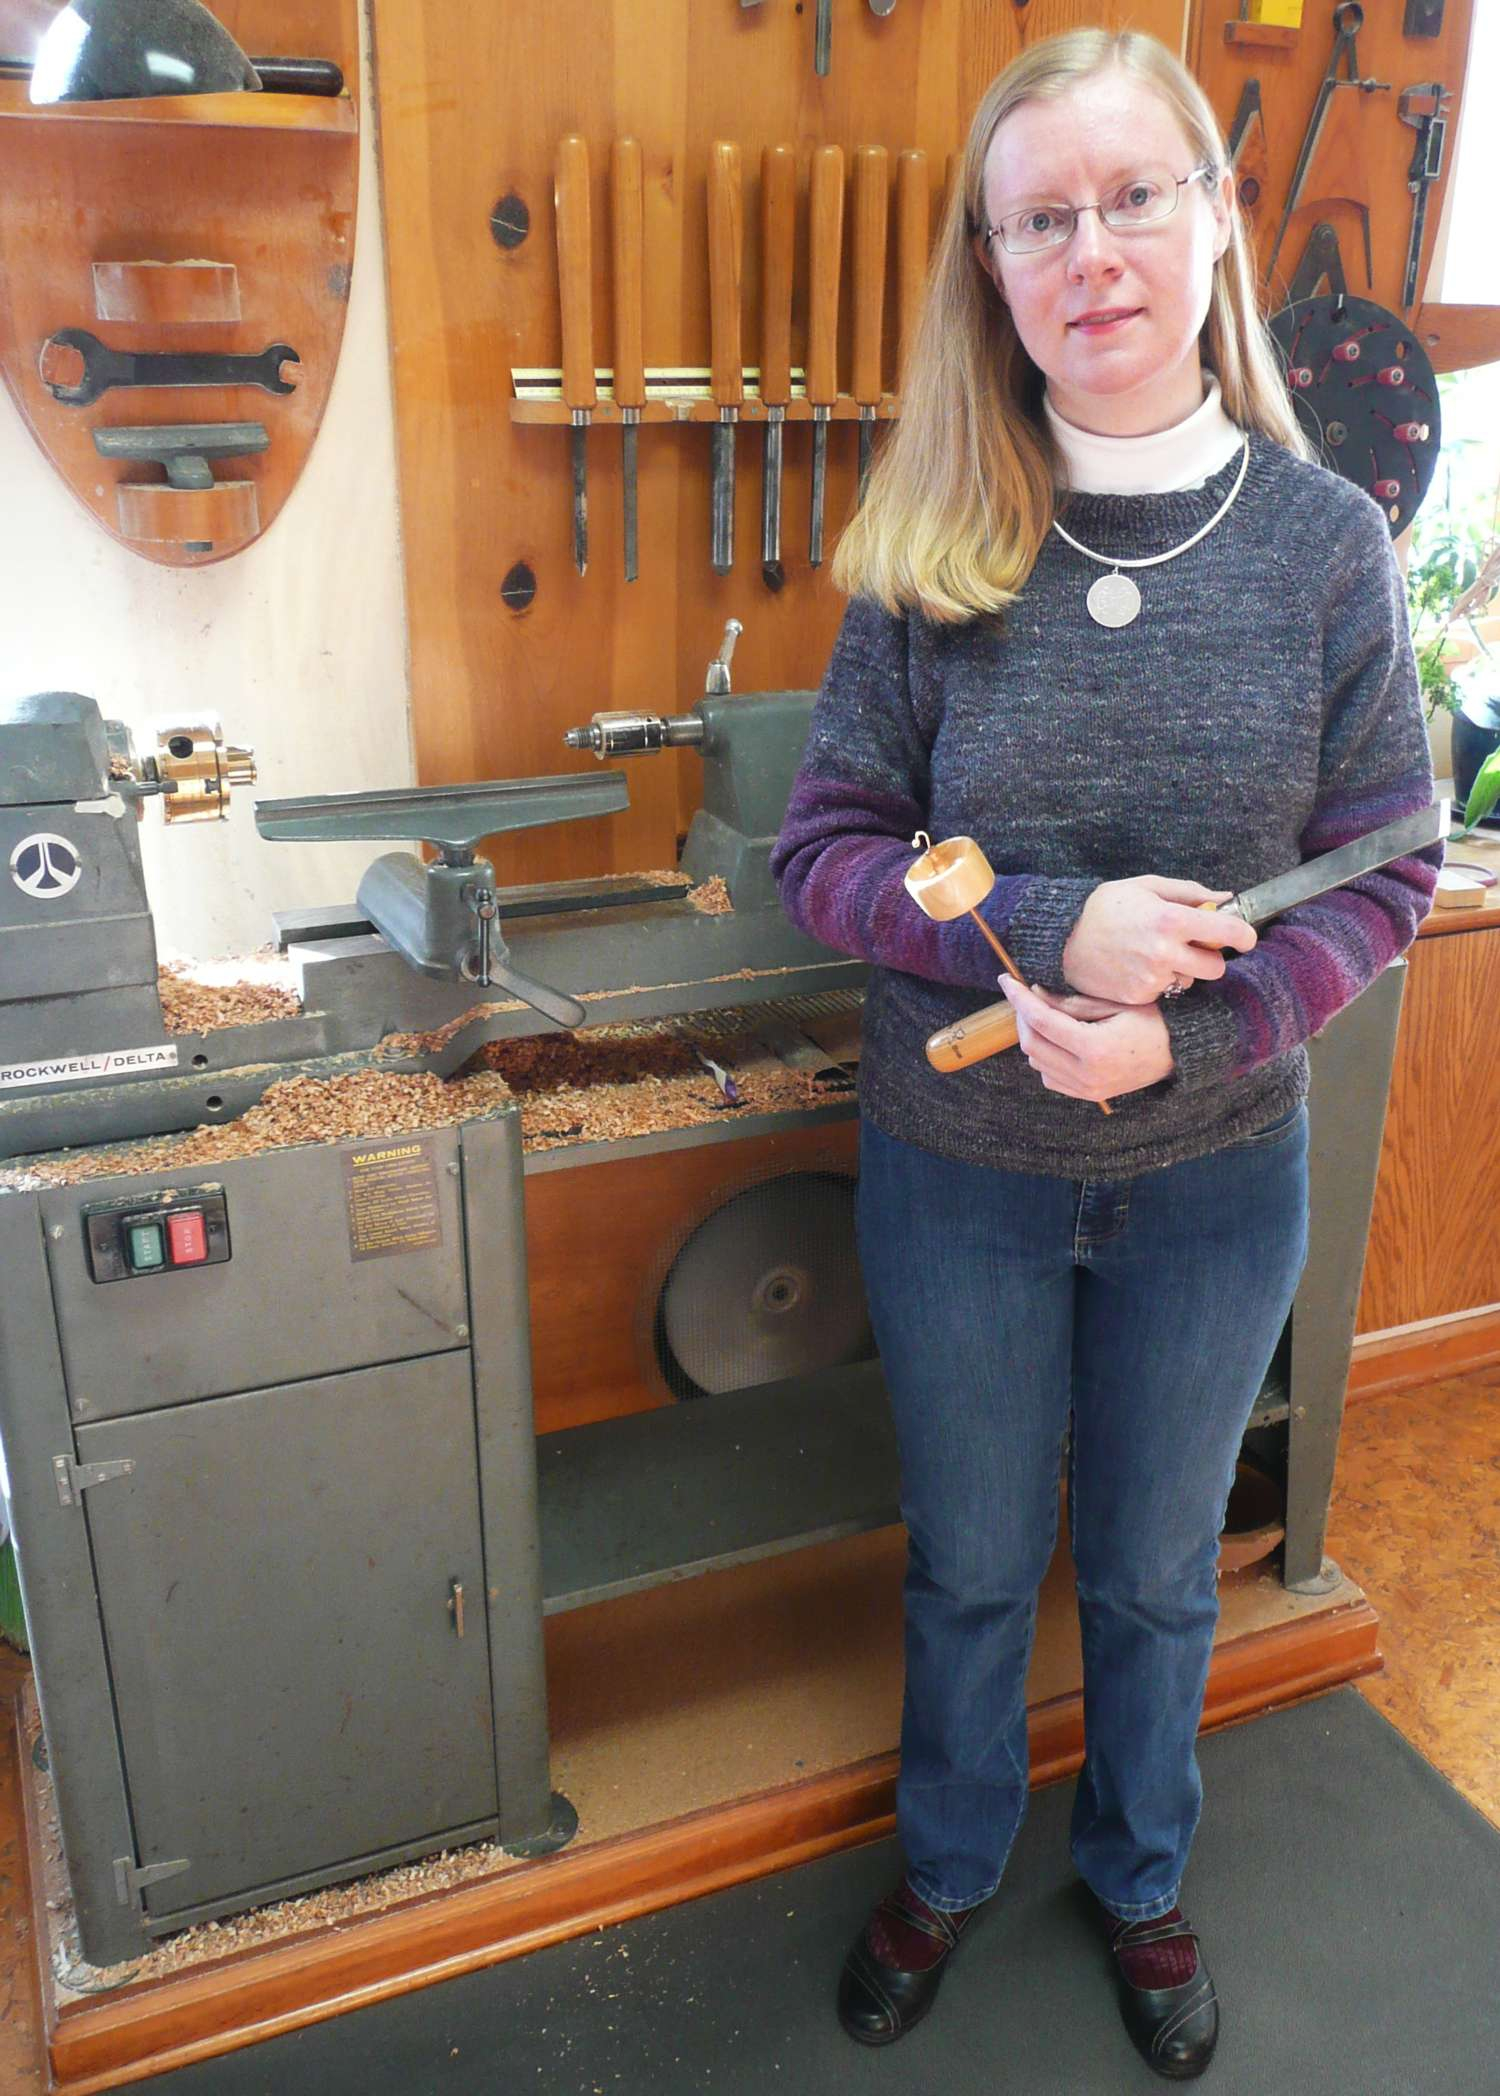 Cynthia Dianne Haney at her wood lathe holding a skew chisel and a top whorl drop spindle.  Showing the spindle maker in her element, wearing a handspun hand knit sweater made entirely with her spindles.